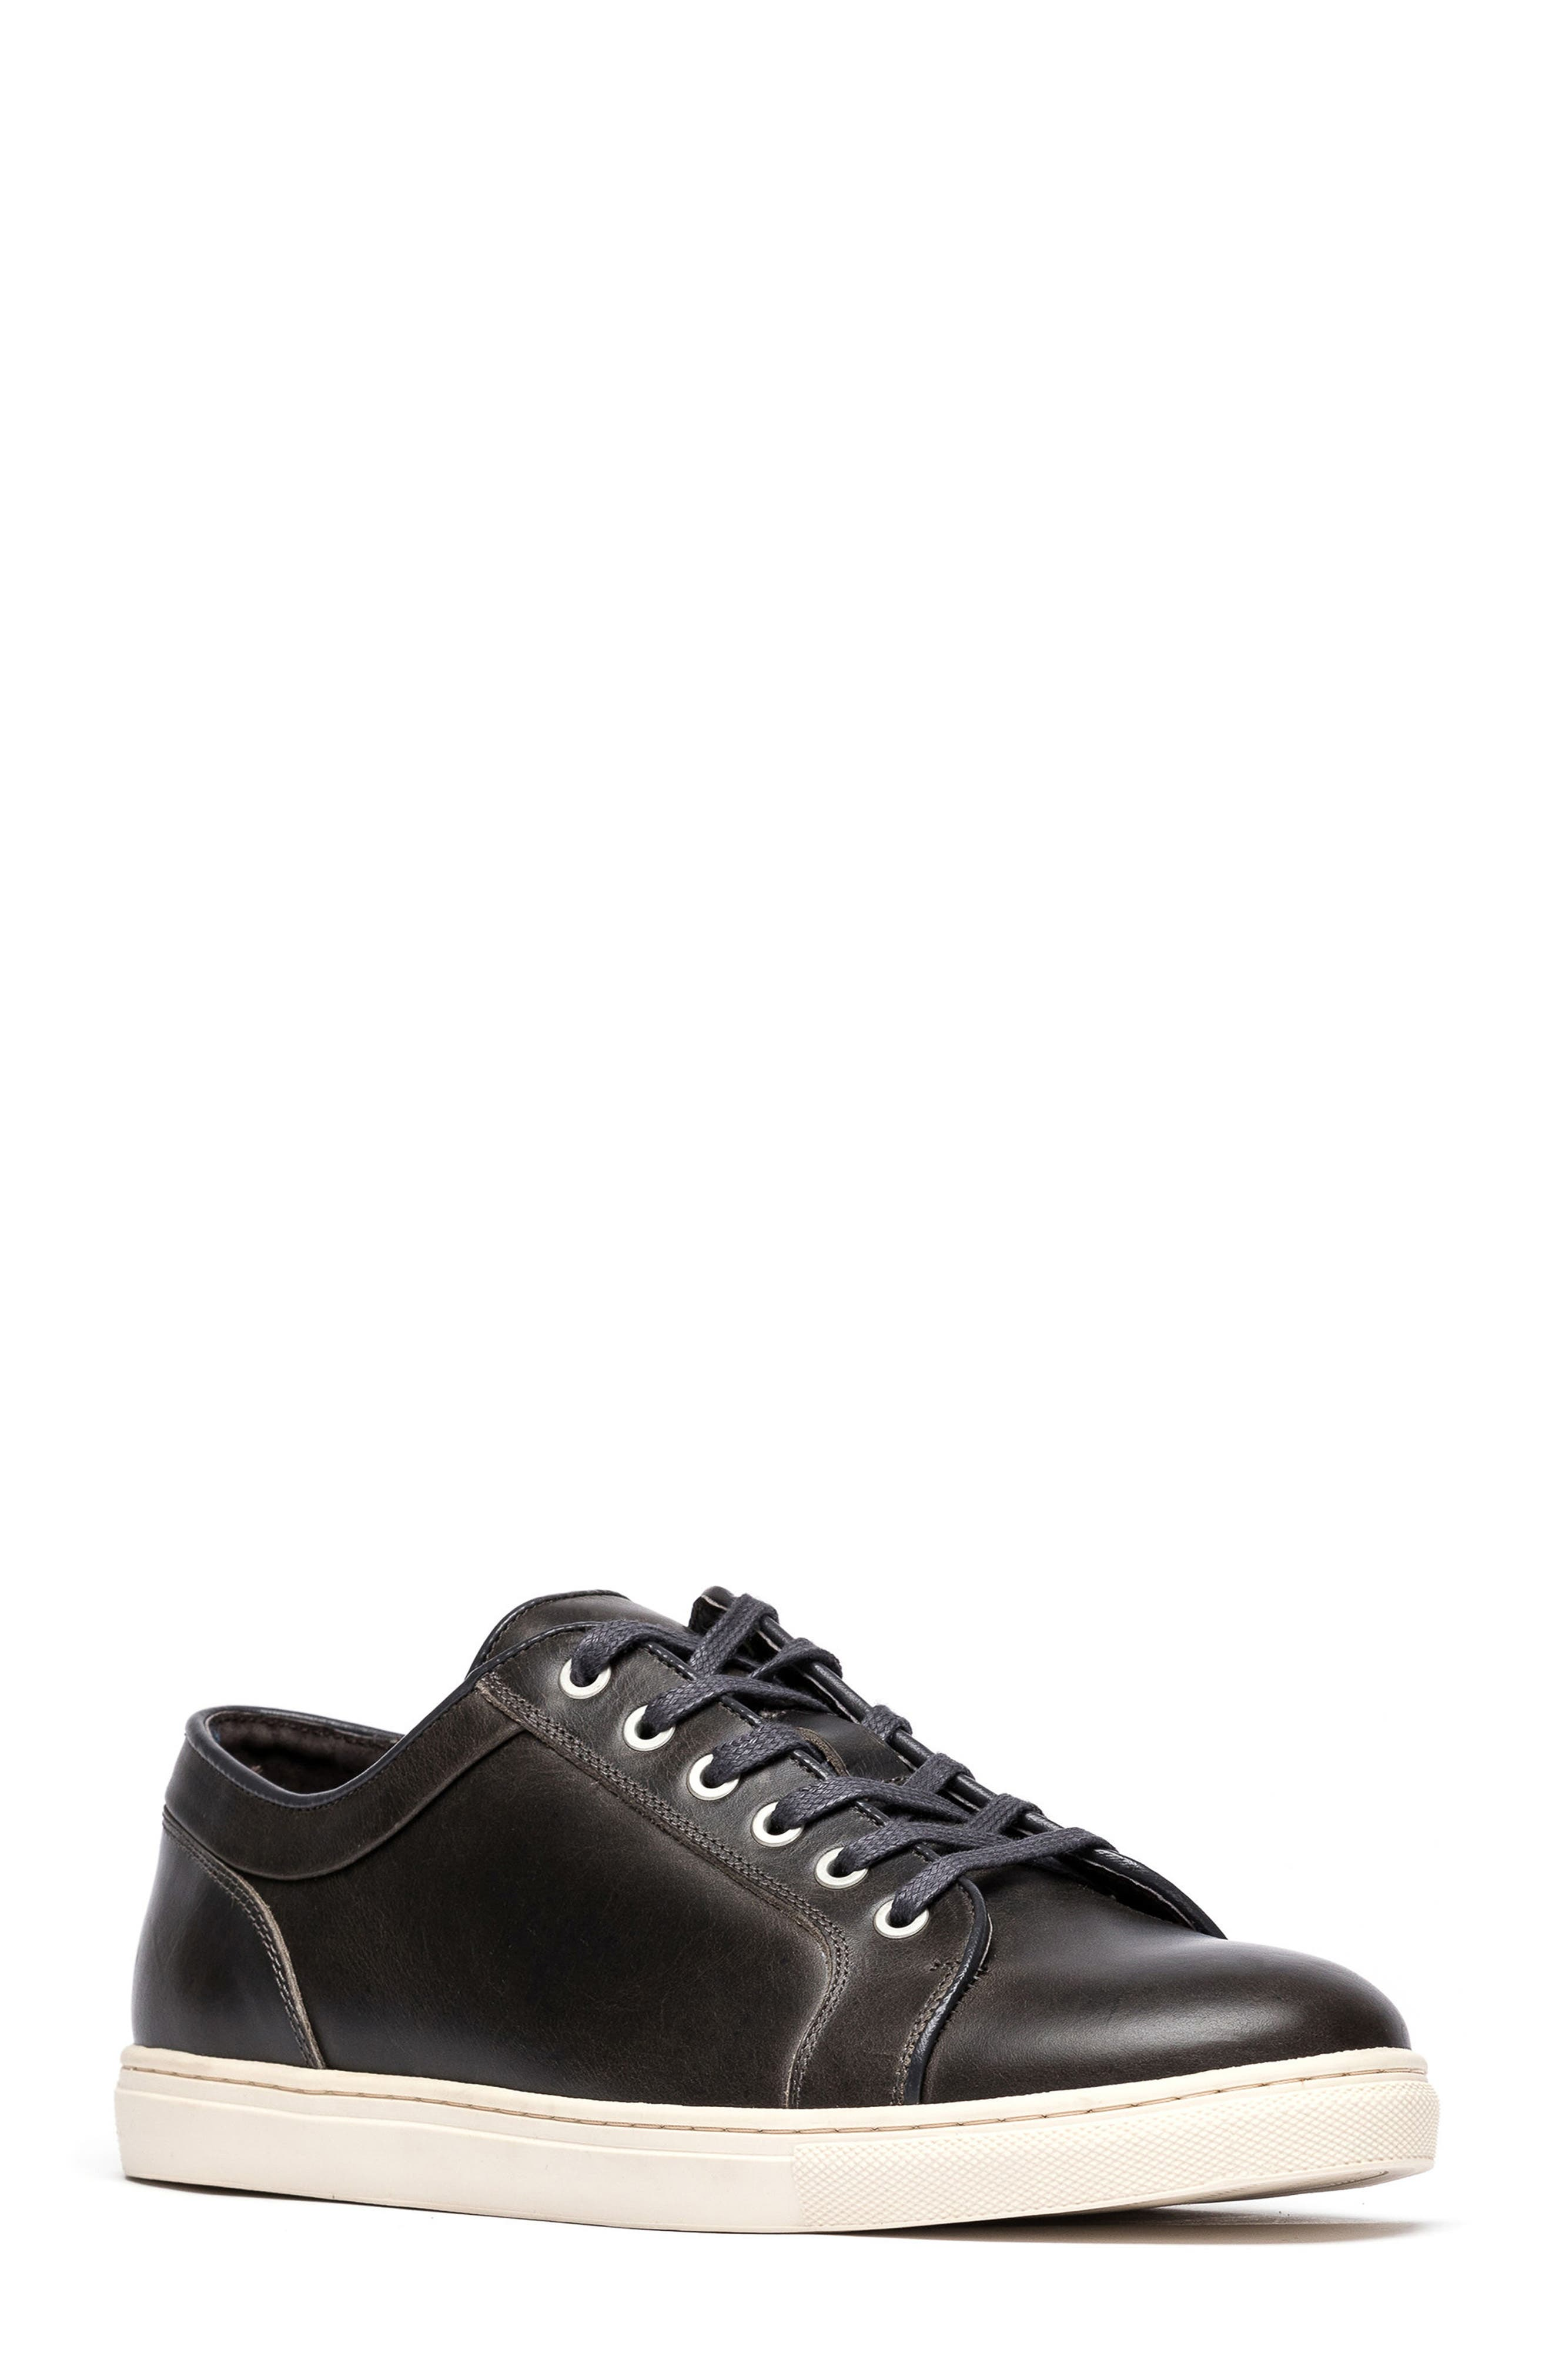 Aria Sneaker,                         Main,                         color, COAL LEATHER